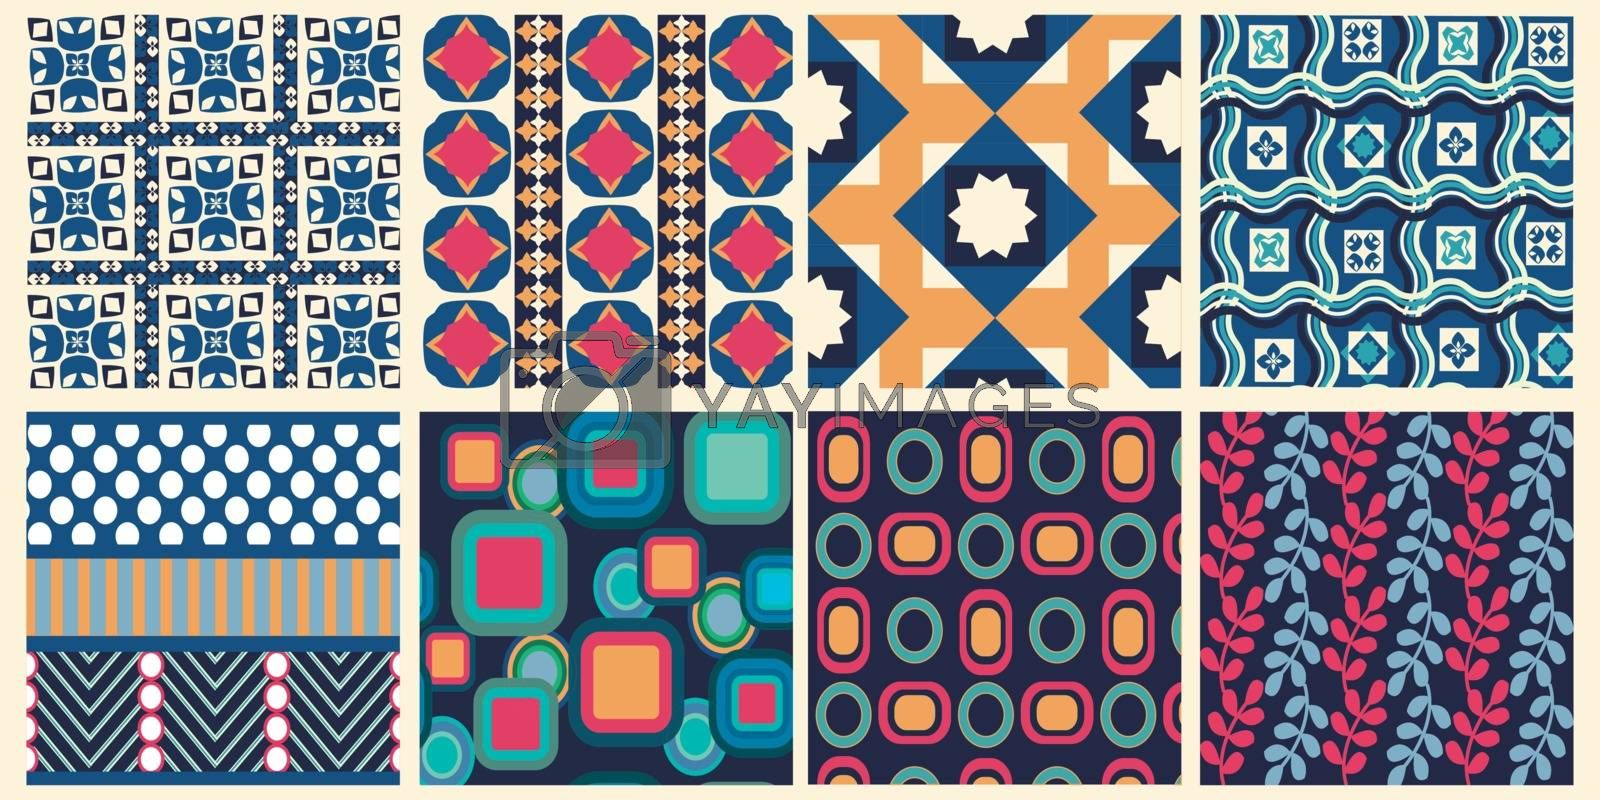 Vector Set of abstract geometric seamless patterns artwork, decorative seamless backgrounds. Repeating graphic texture, wallpaper collection, design for fabric or paper print.